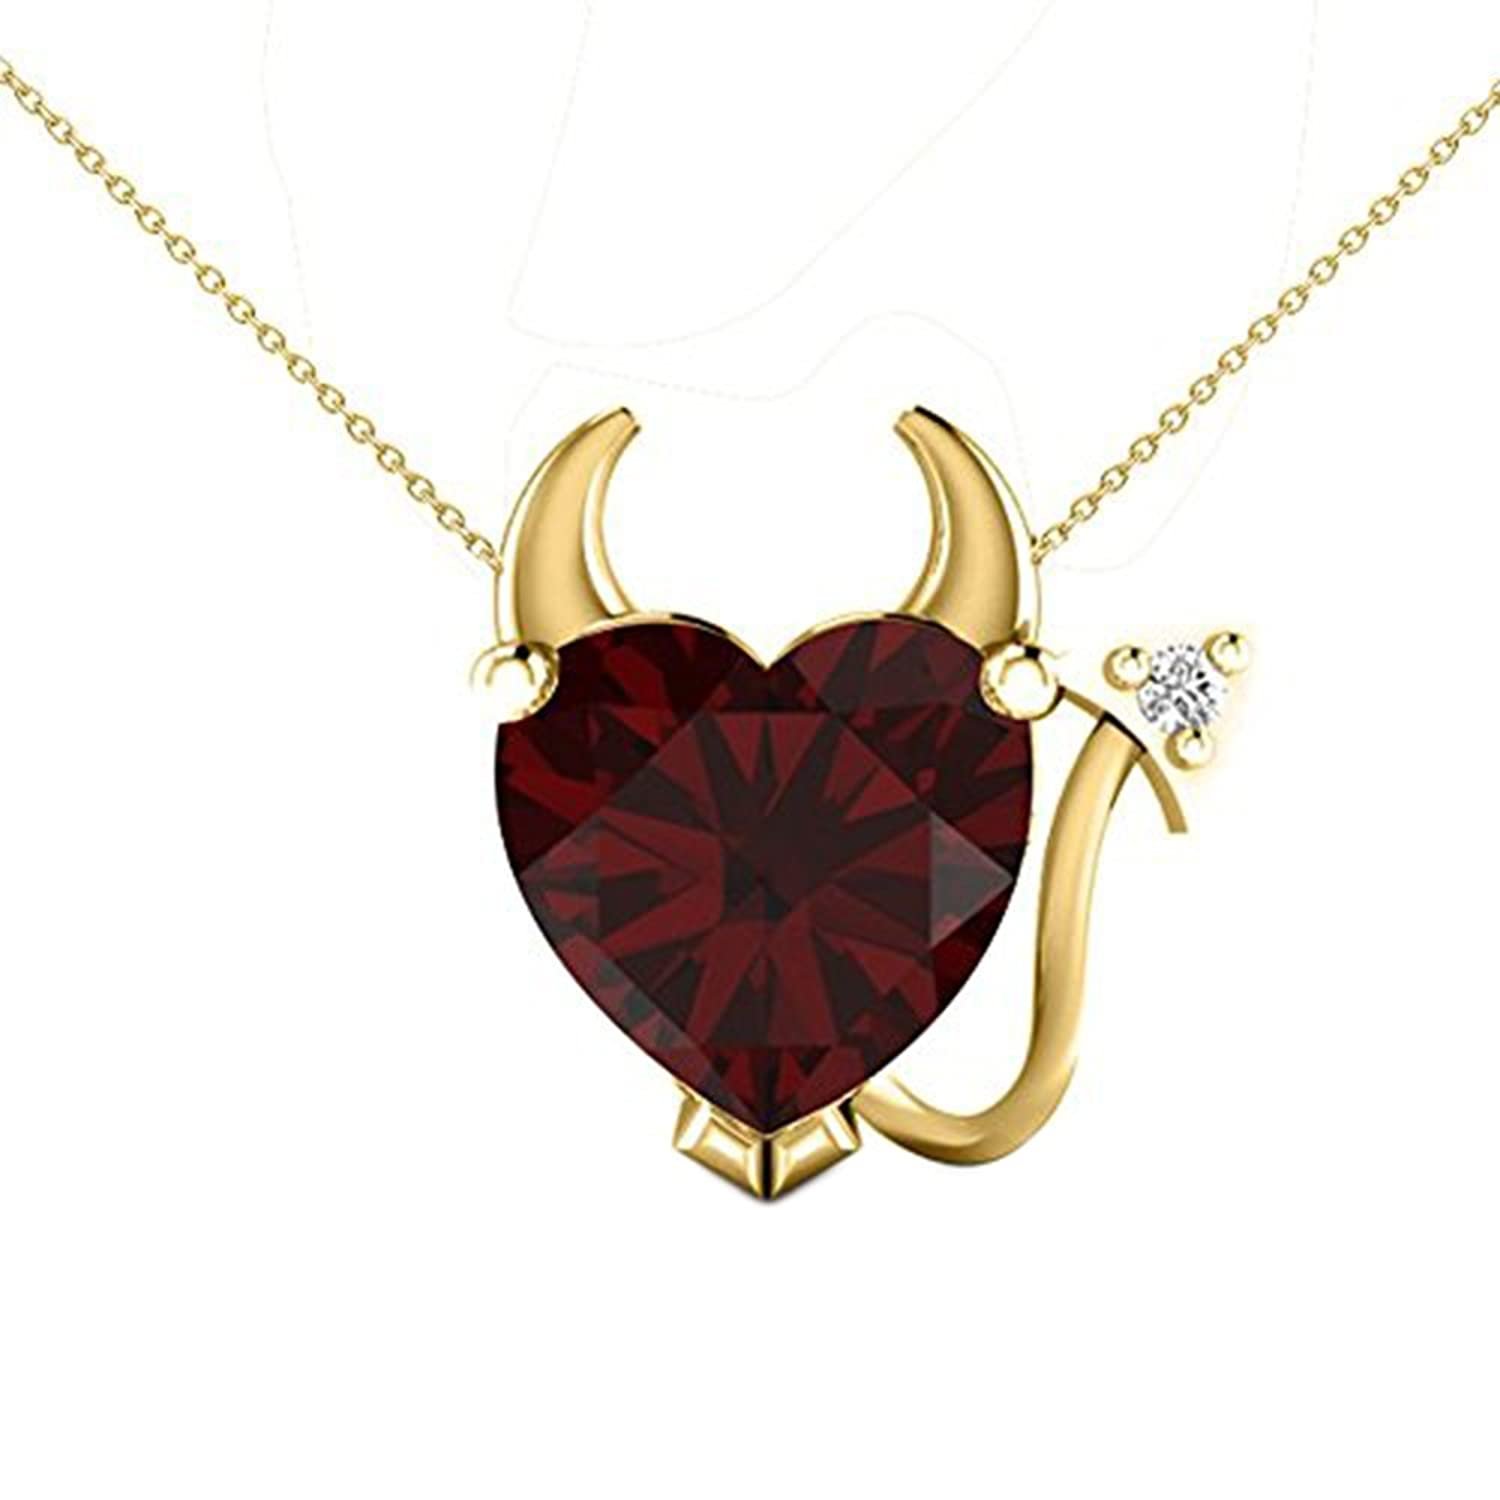 Araska Diamond Red Garnet Solitaire With Accents Devil Heart Pendant 18k Yellow Gold PL With 18